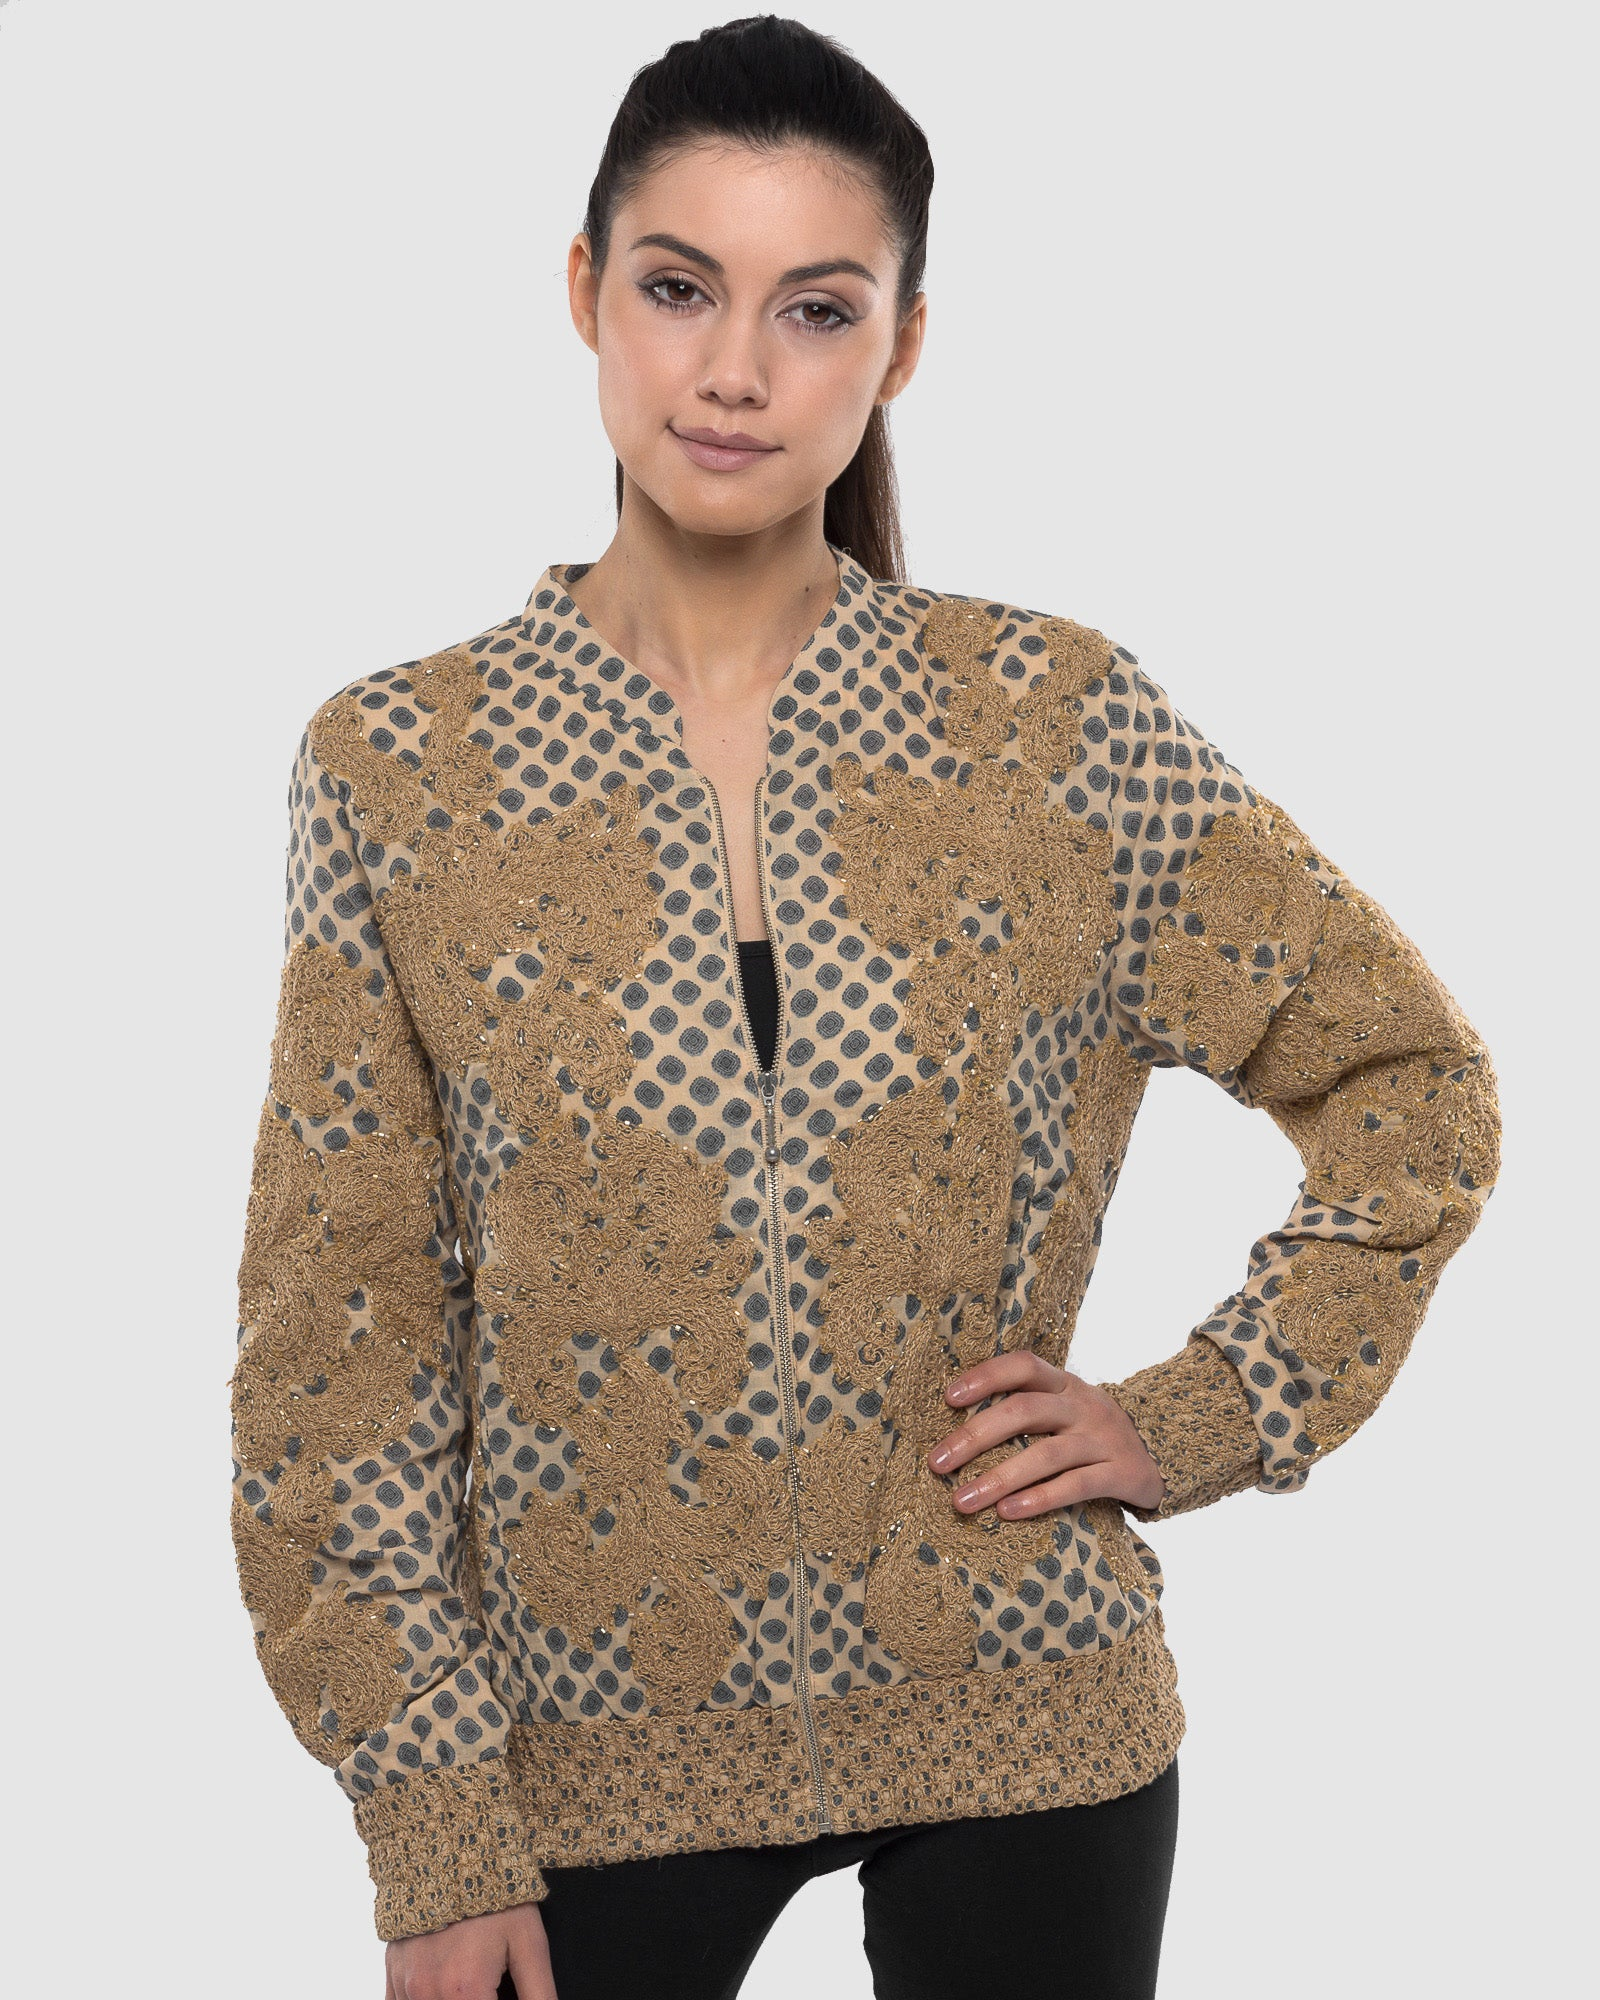 BEIGE EMBROIDERED AND BEADED PRINTED BOMBER JACKET